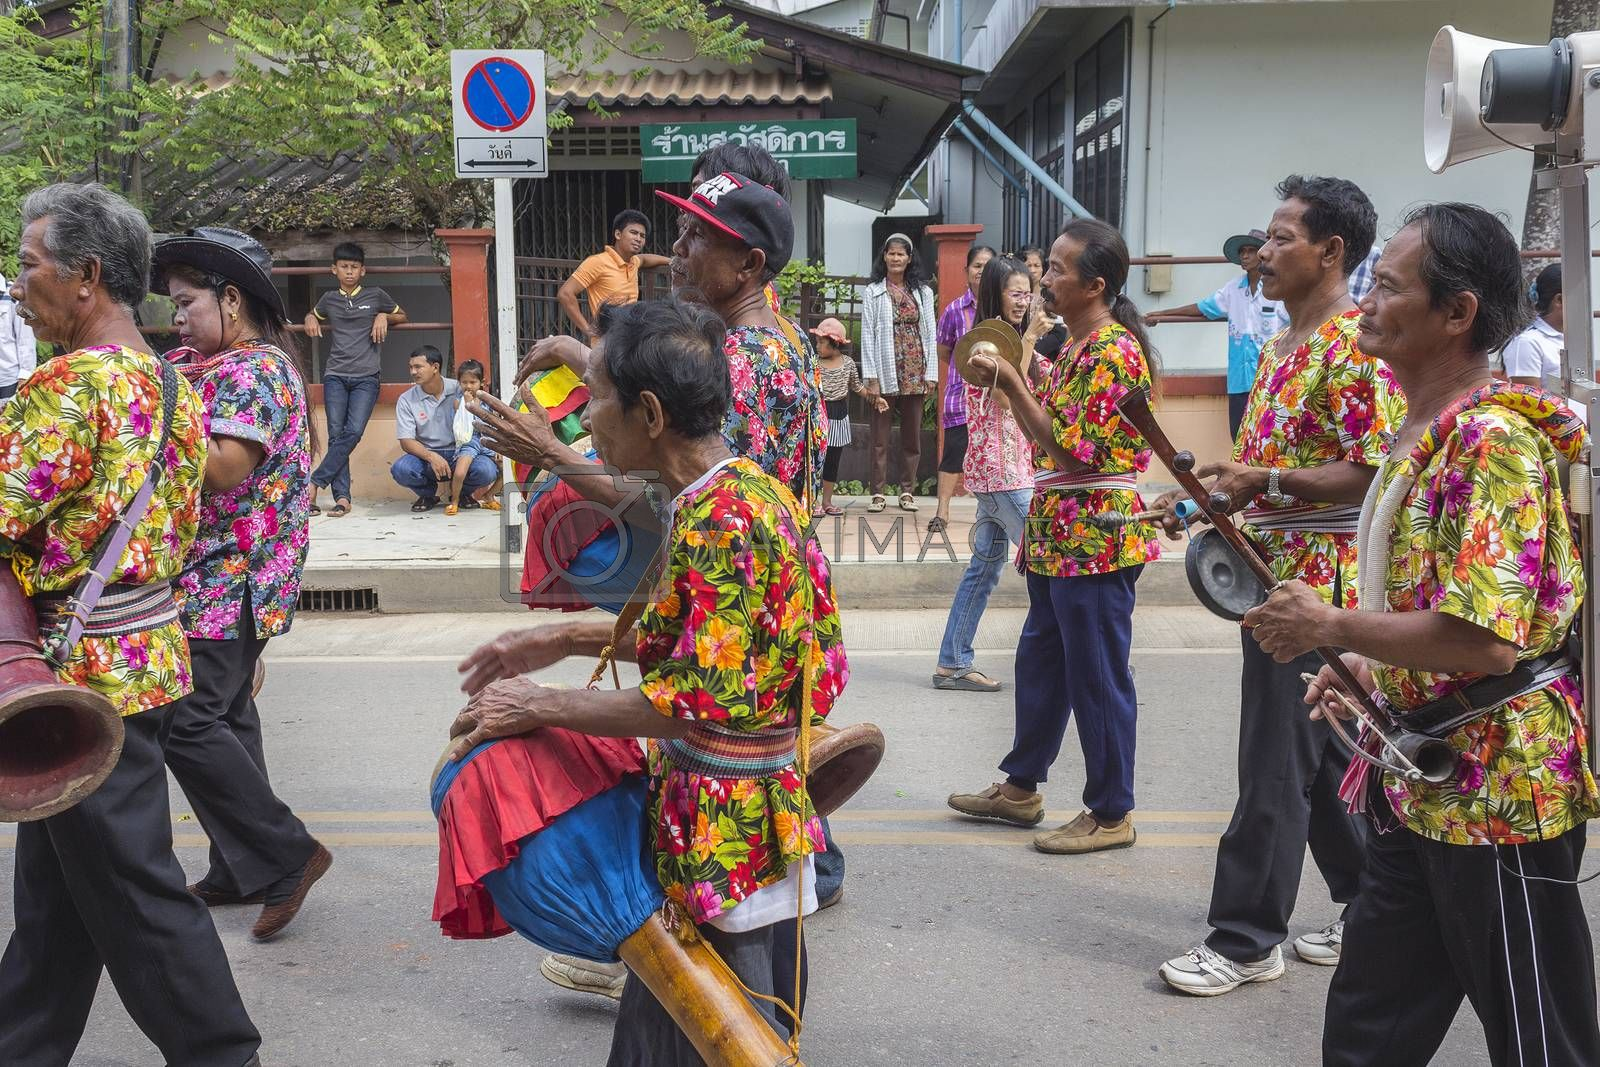 """THAILAND - OCTOBER 20: Unidentified people participated in """"Ngan Chak Pra"""", a traditional buddhist festival on October 20, 2013 in Chaiya,Suratthani, Thailand."""